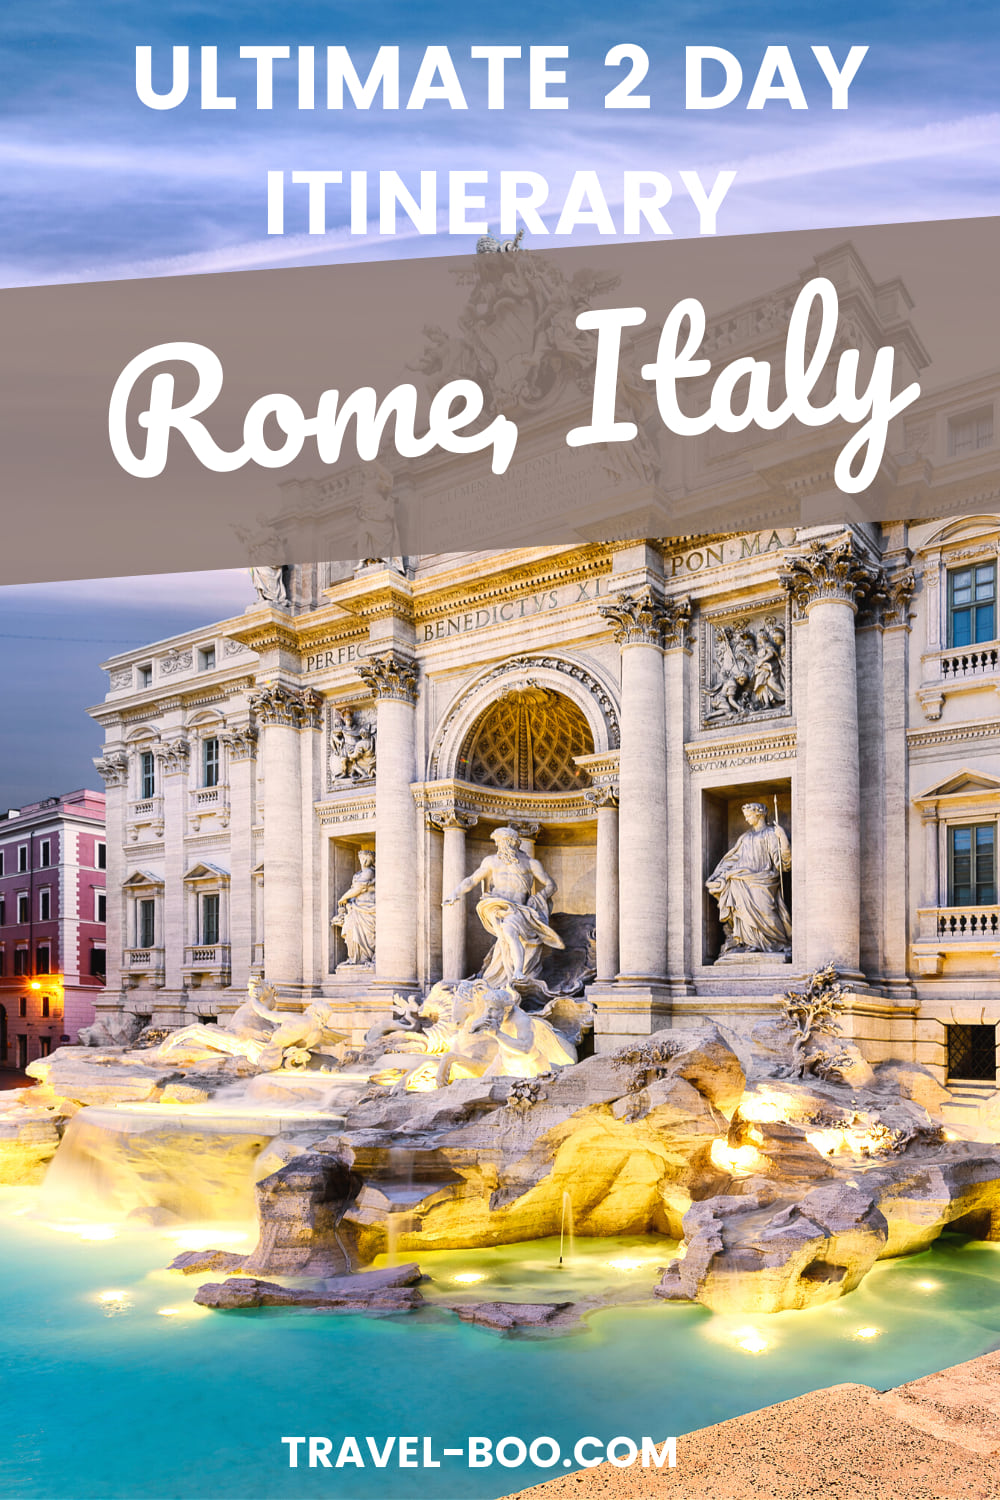 The Perfect 2 Days in Rome Itinerary - Rome Travel Guide! Rome Itinerary, Rome Travel, Rome Travel Guide, Rome Italy, Rome Travel Things to do, Italy Travel Itinerary, Italy Travel Guide. #romeitaly #rome #rometravel #romeguide